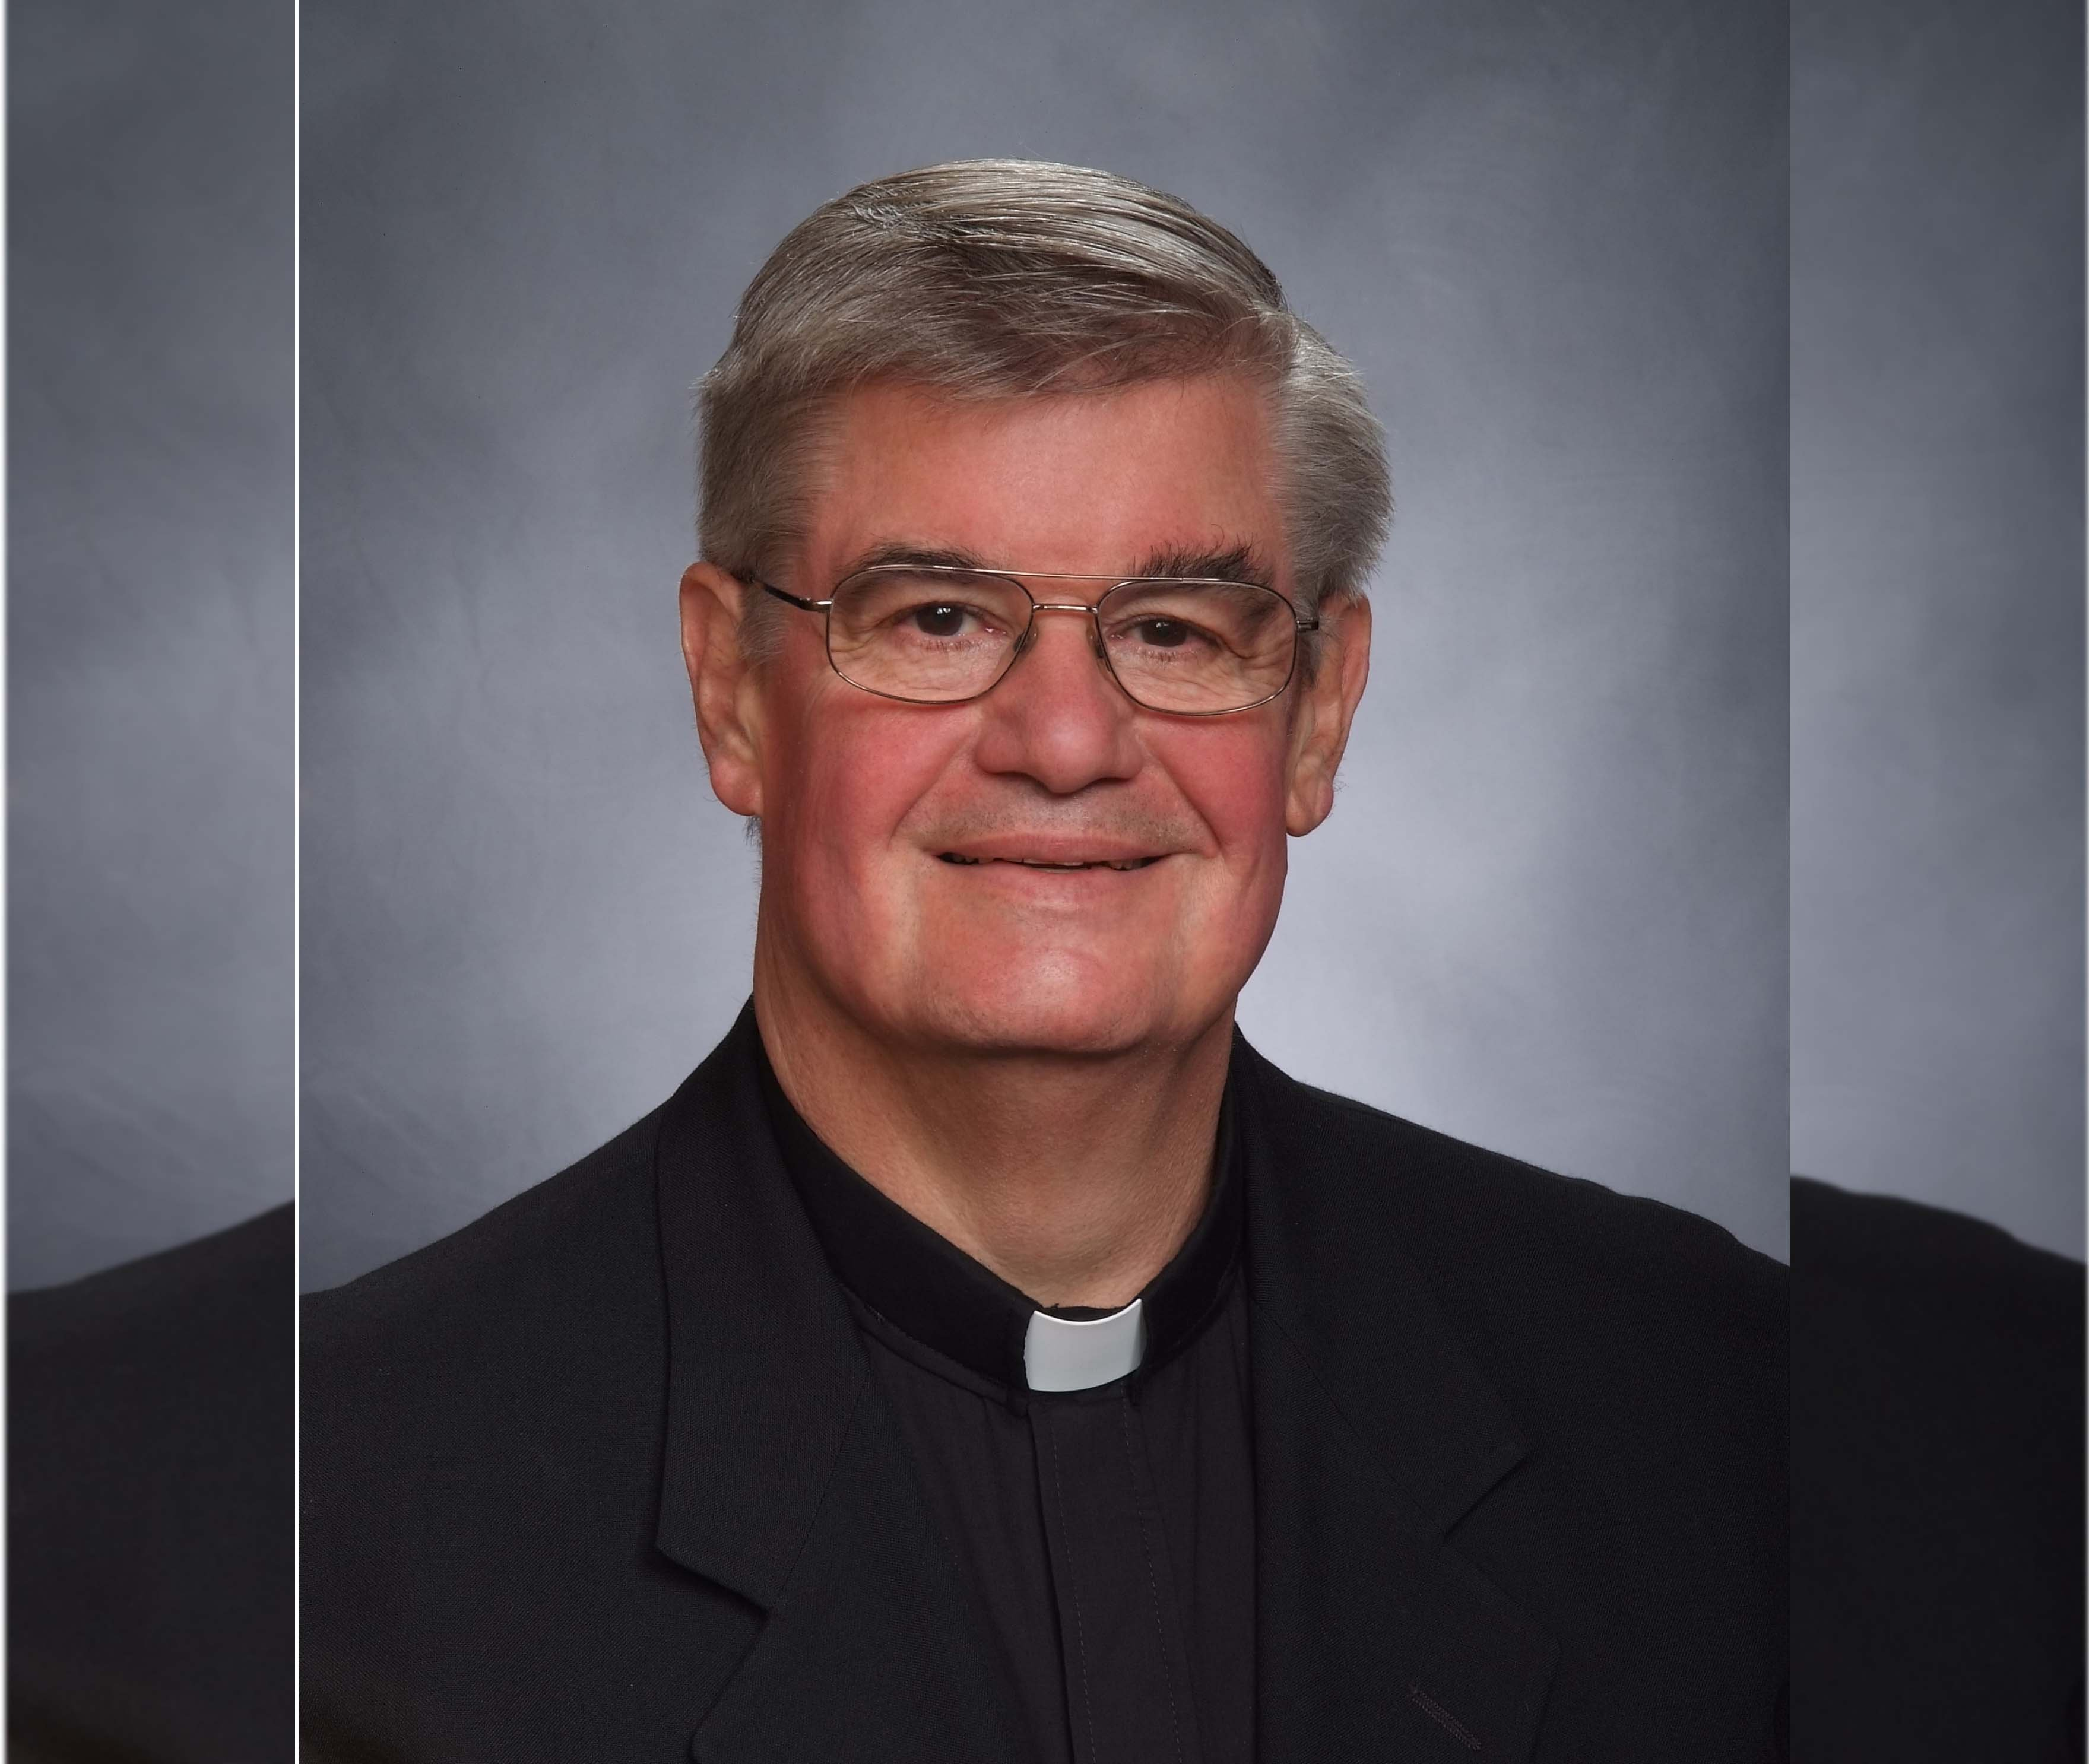 Video: Father Ronald Dombrowski suspended by Diocese of Saginaw